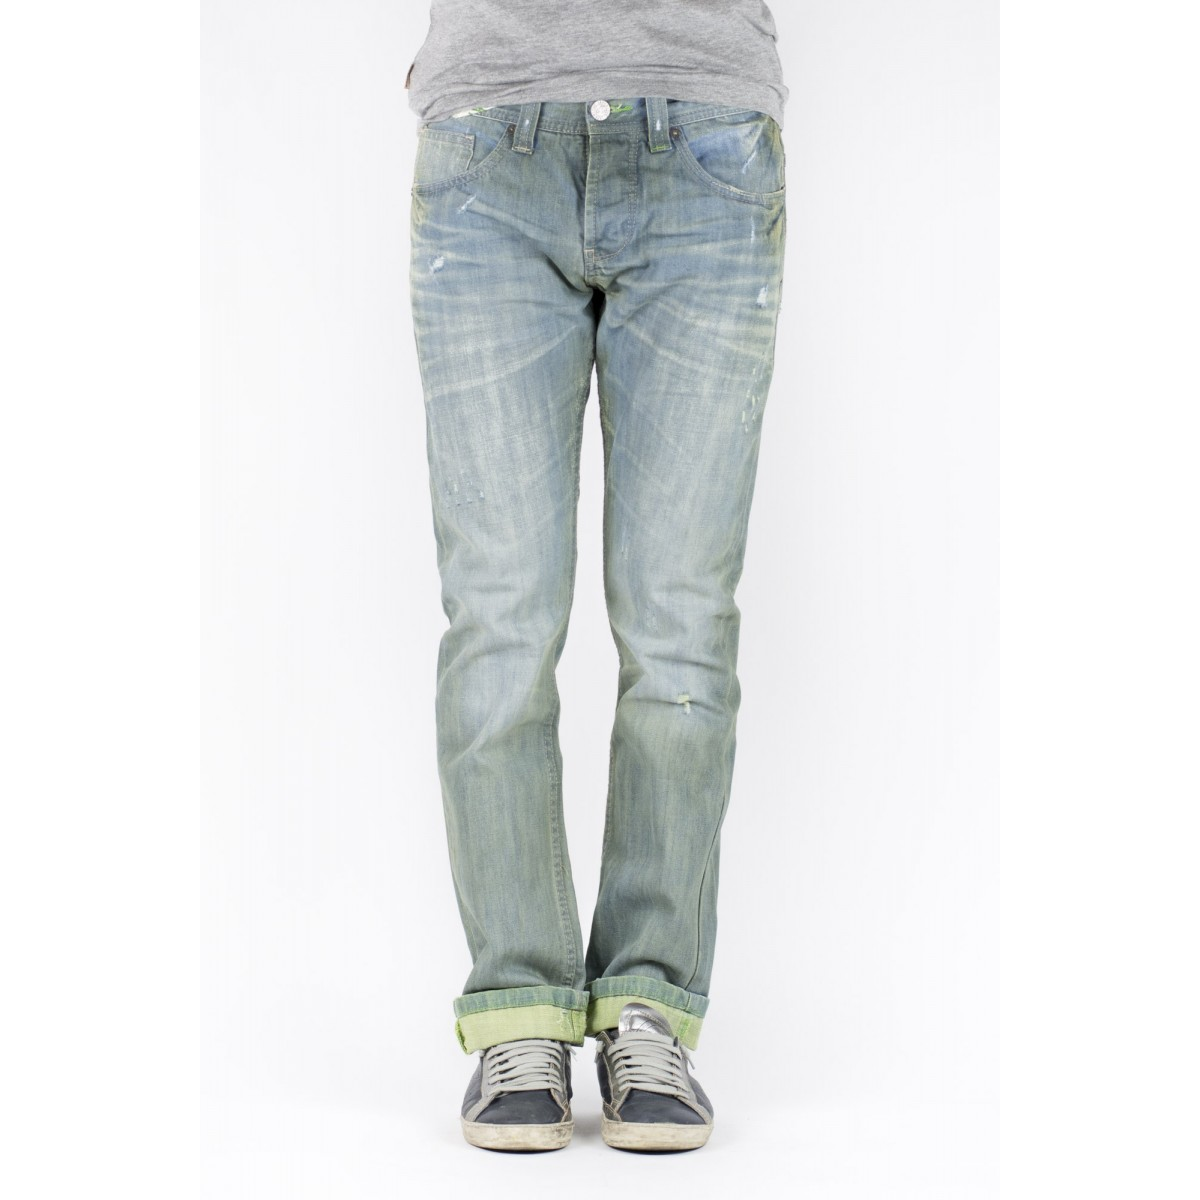 Jeans One Green Elephant Uomo - Chico 02351